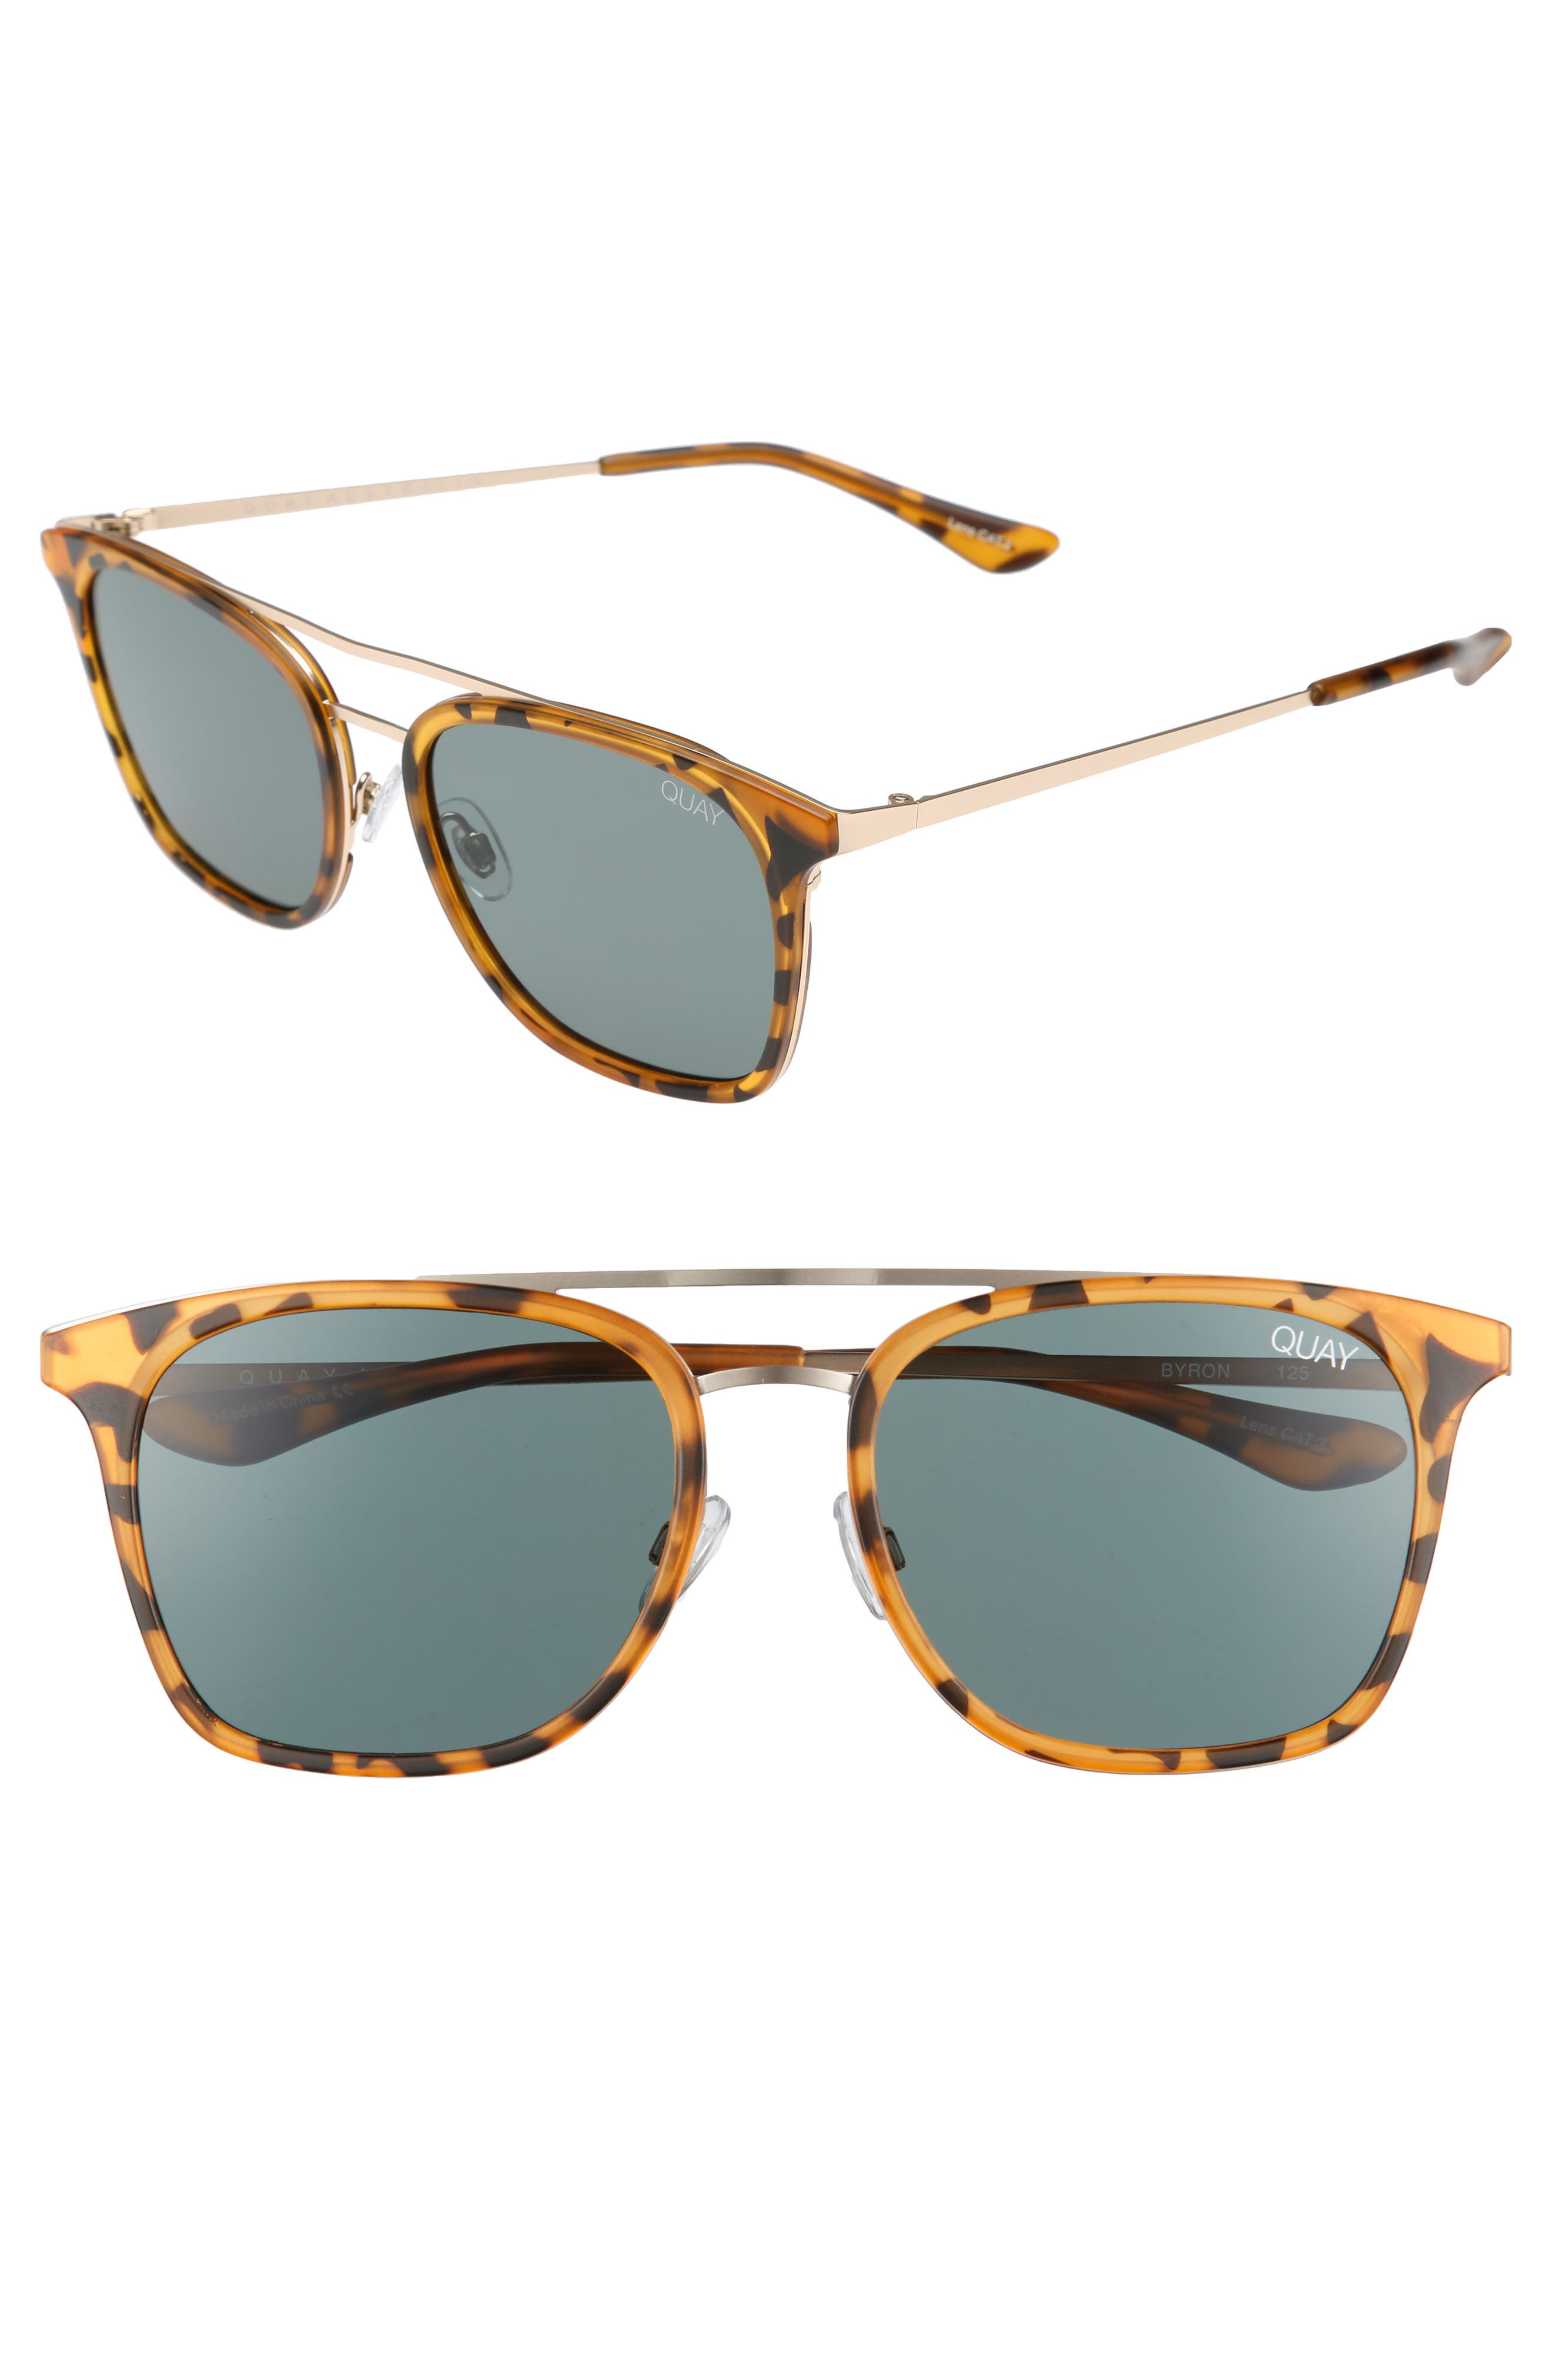 Byron 50mm Sunglasses,                             Main thumbnail 1, color,                             Tortoise/ Green